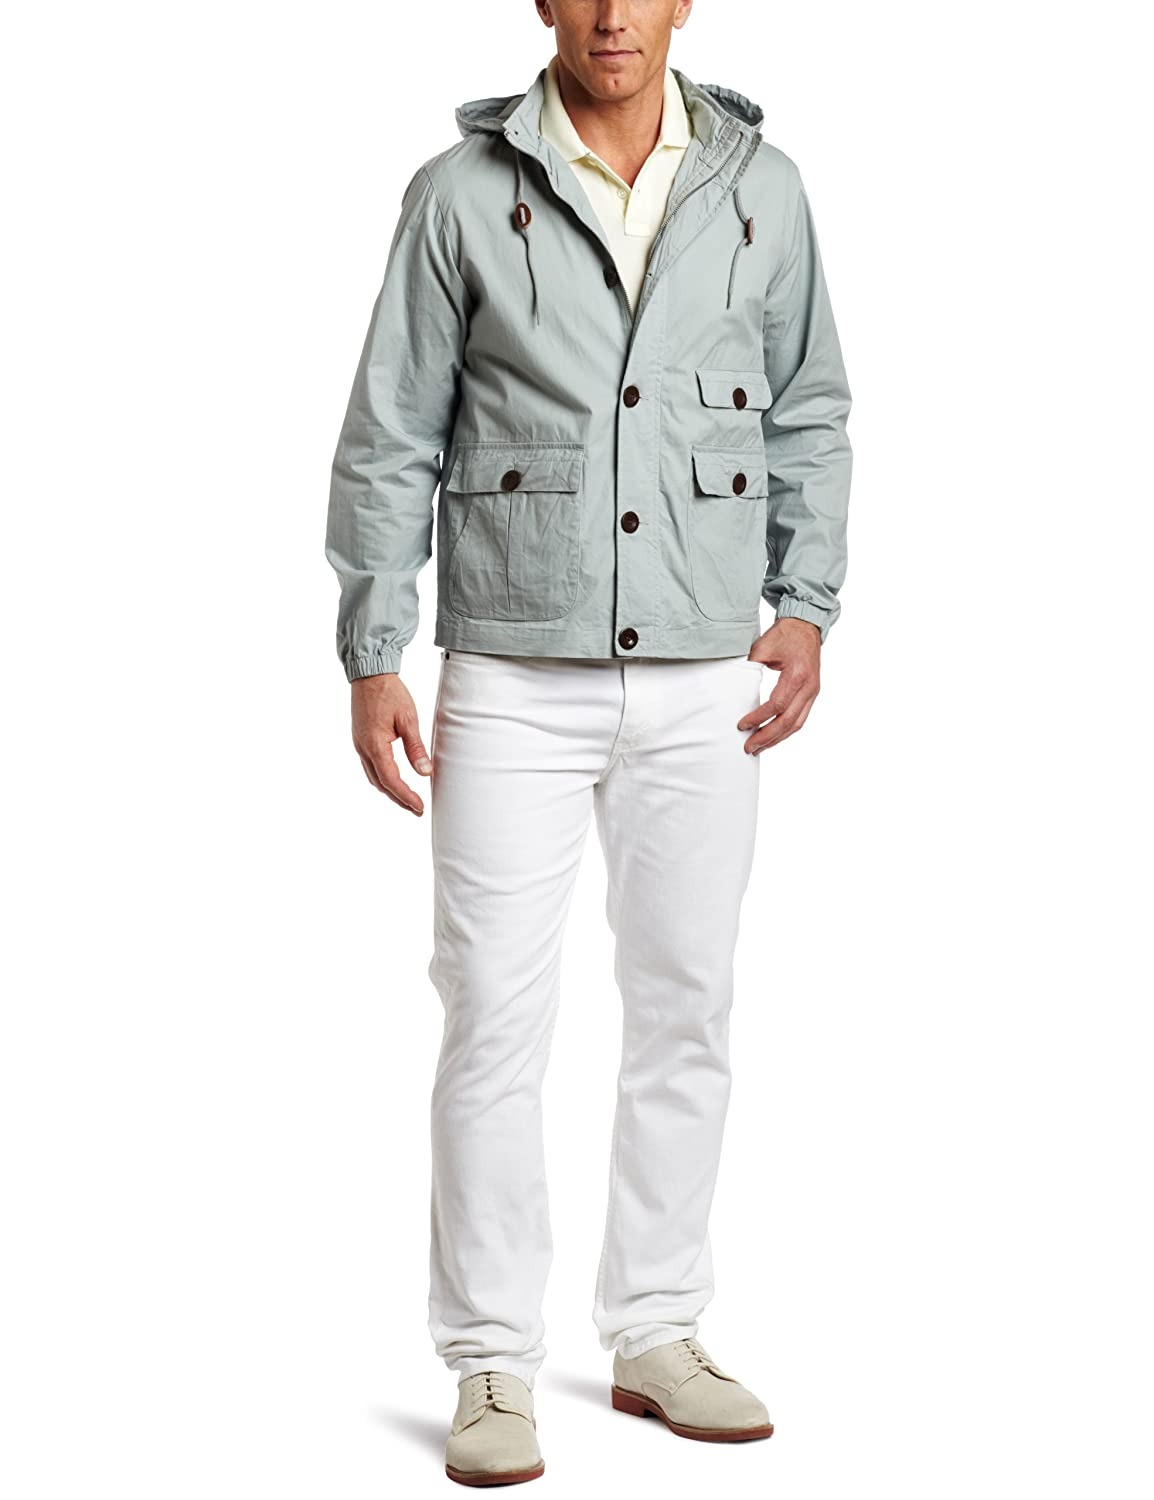 FARAH Men's The Hanway Button Up Jacket Eggshell Large Farah Mens FESR0008